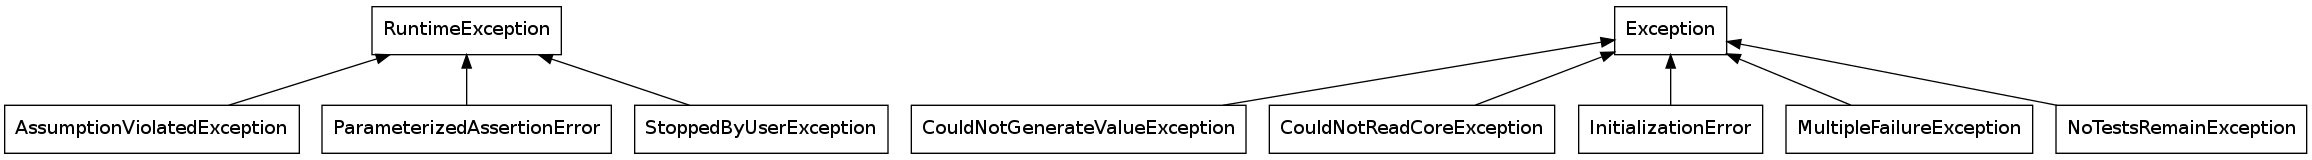 Exception Fact Sheet for